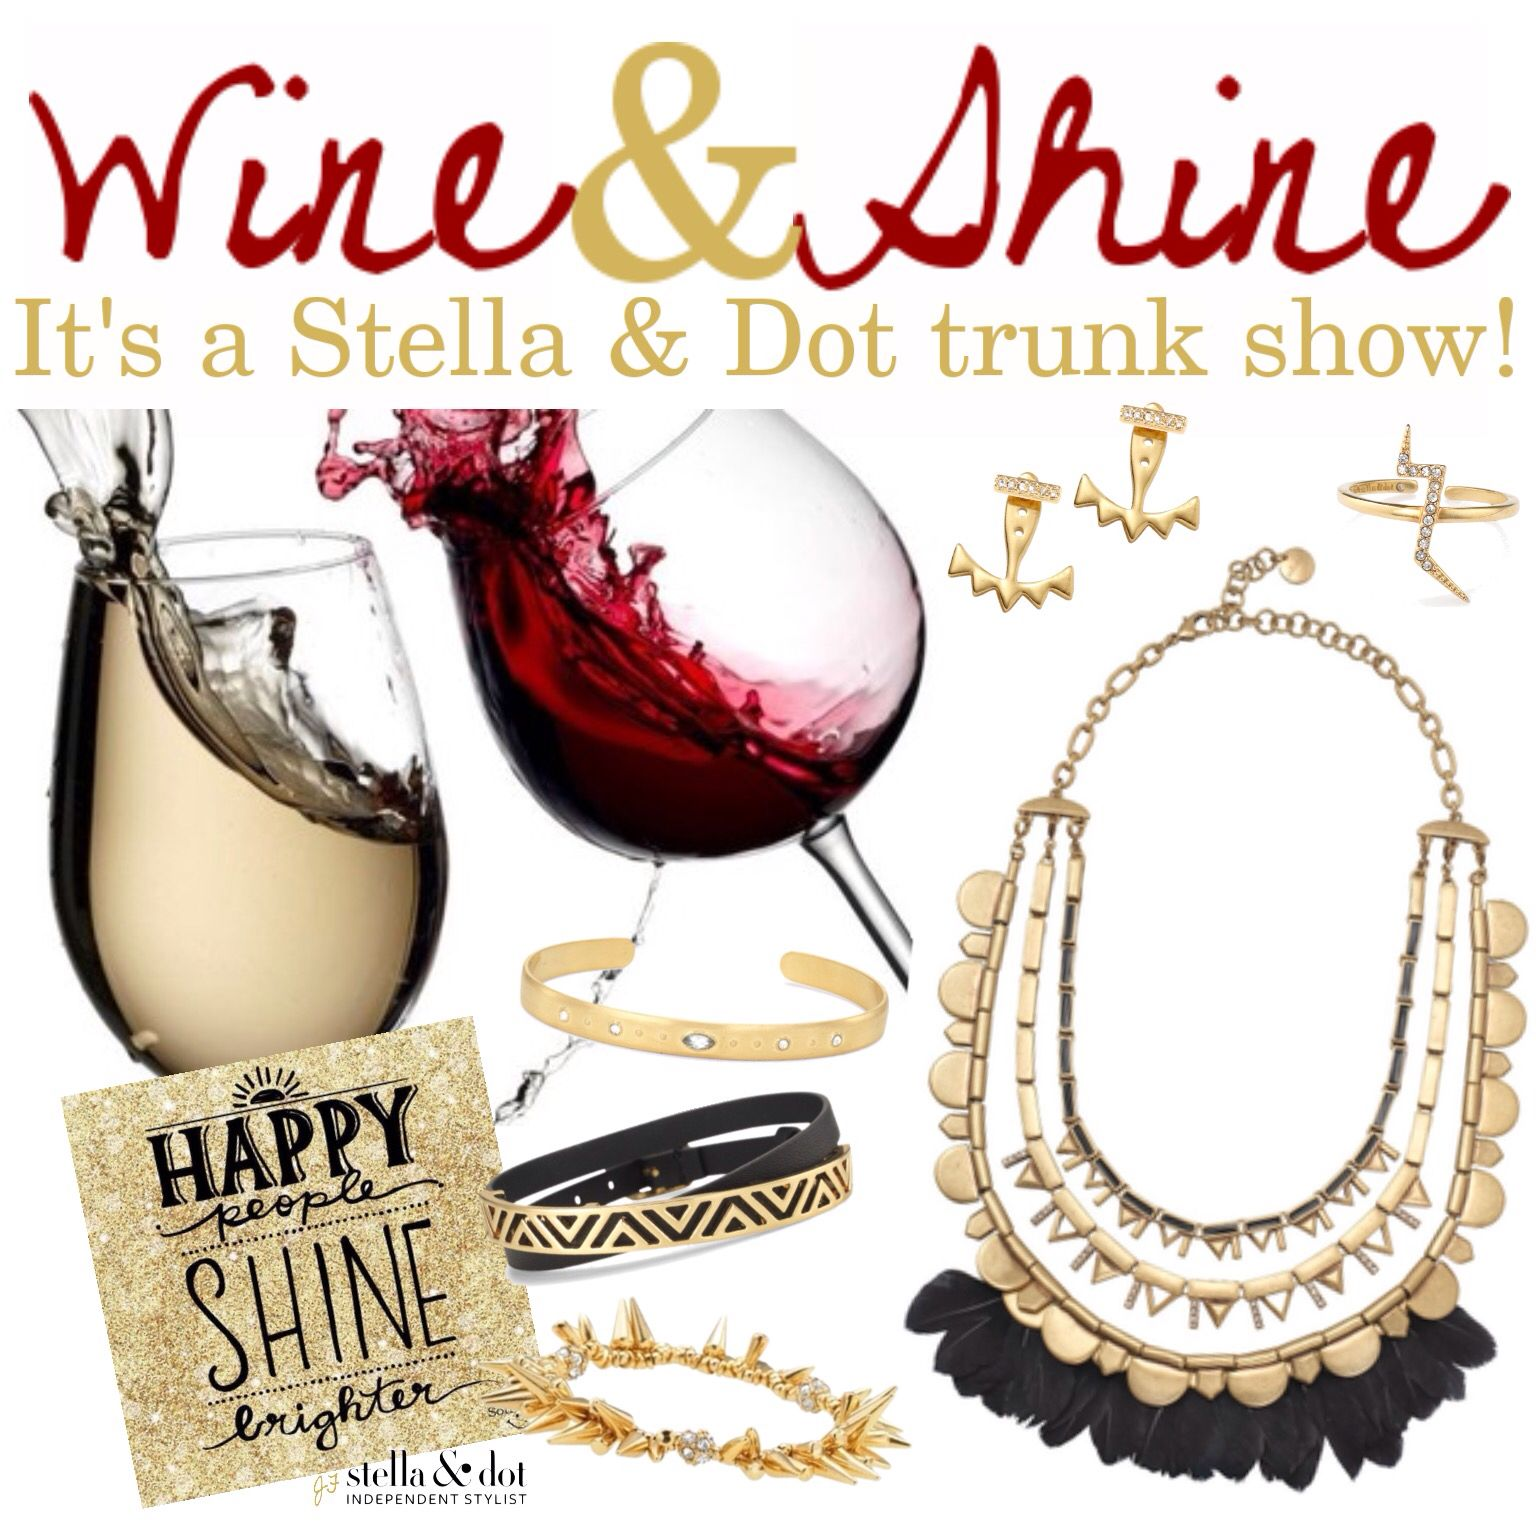 Wine & Shine Stella & Dot trunk show party theme and booking image. Perfect for a Sunday brunch trunk show!